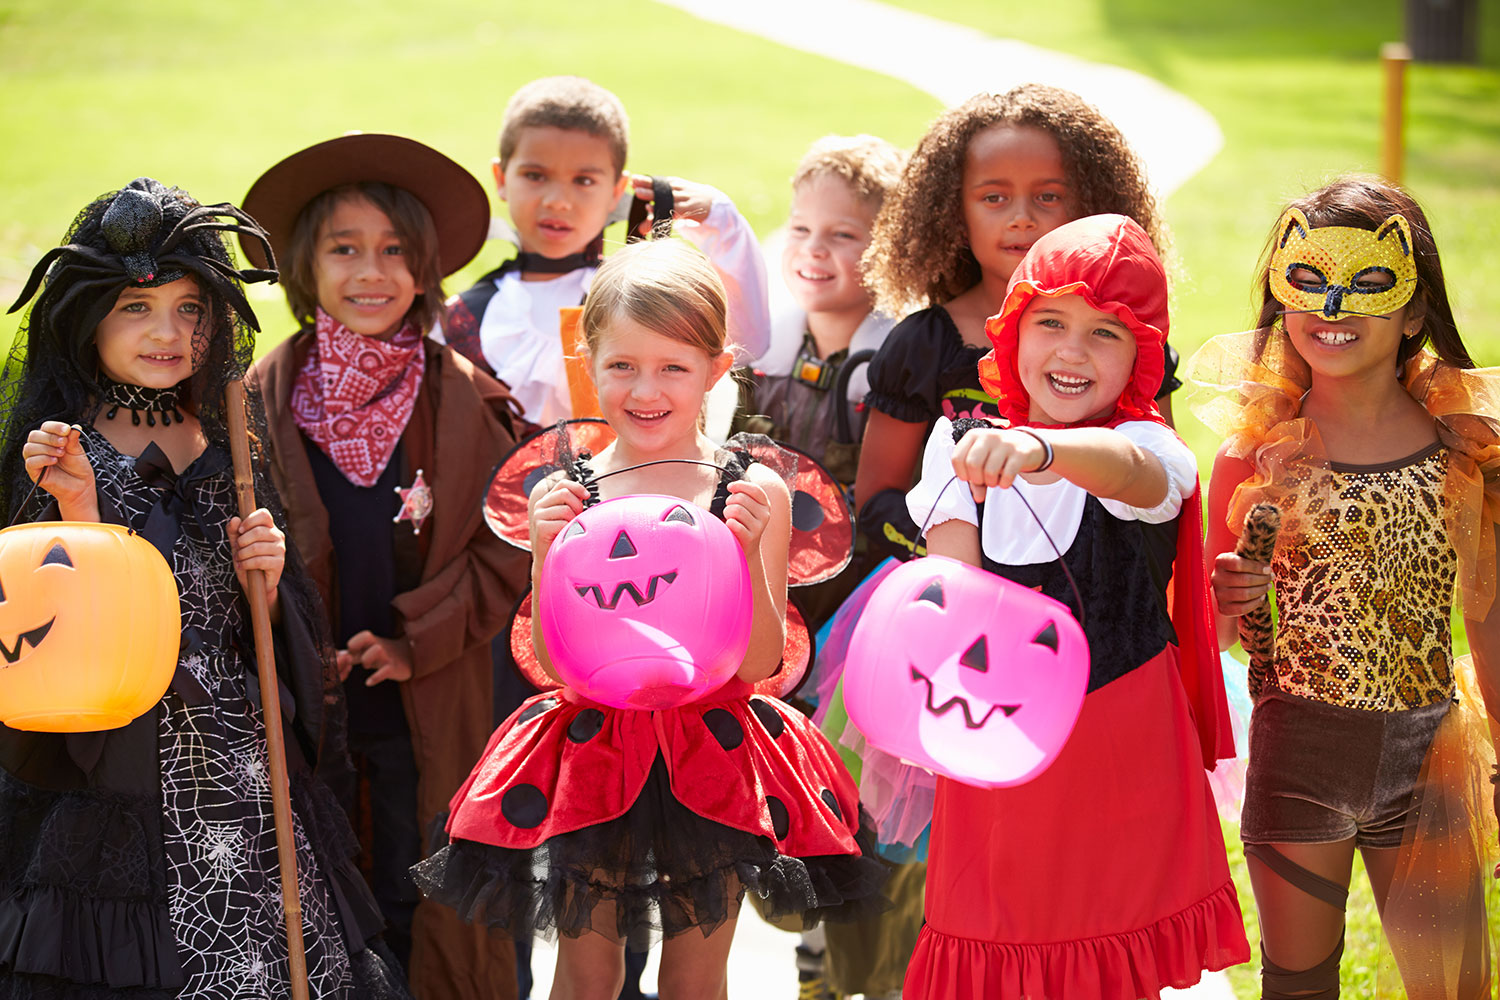 10 Easy Things You Can Do to Keep Kids Safe on Halloween